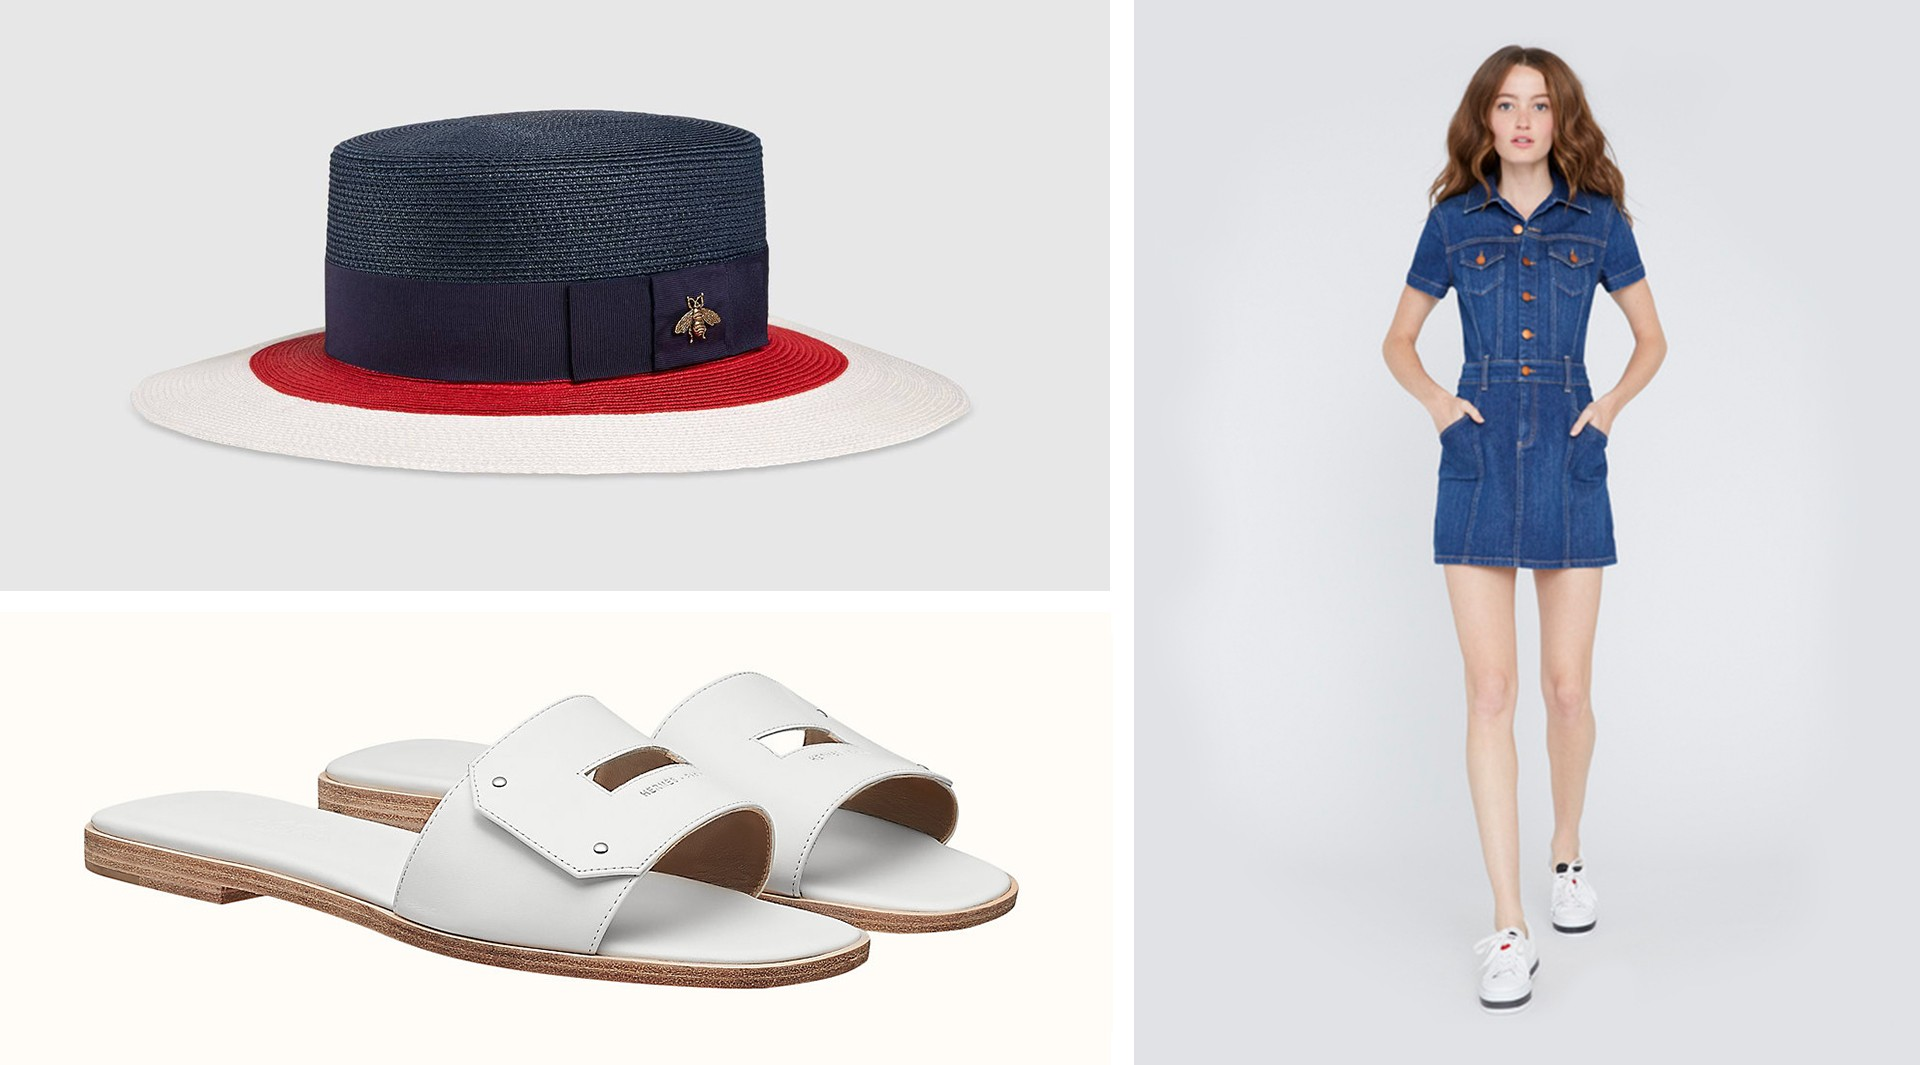 Six Stylish Ways To Celebrate the Fourth of July